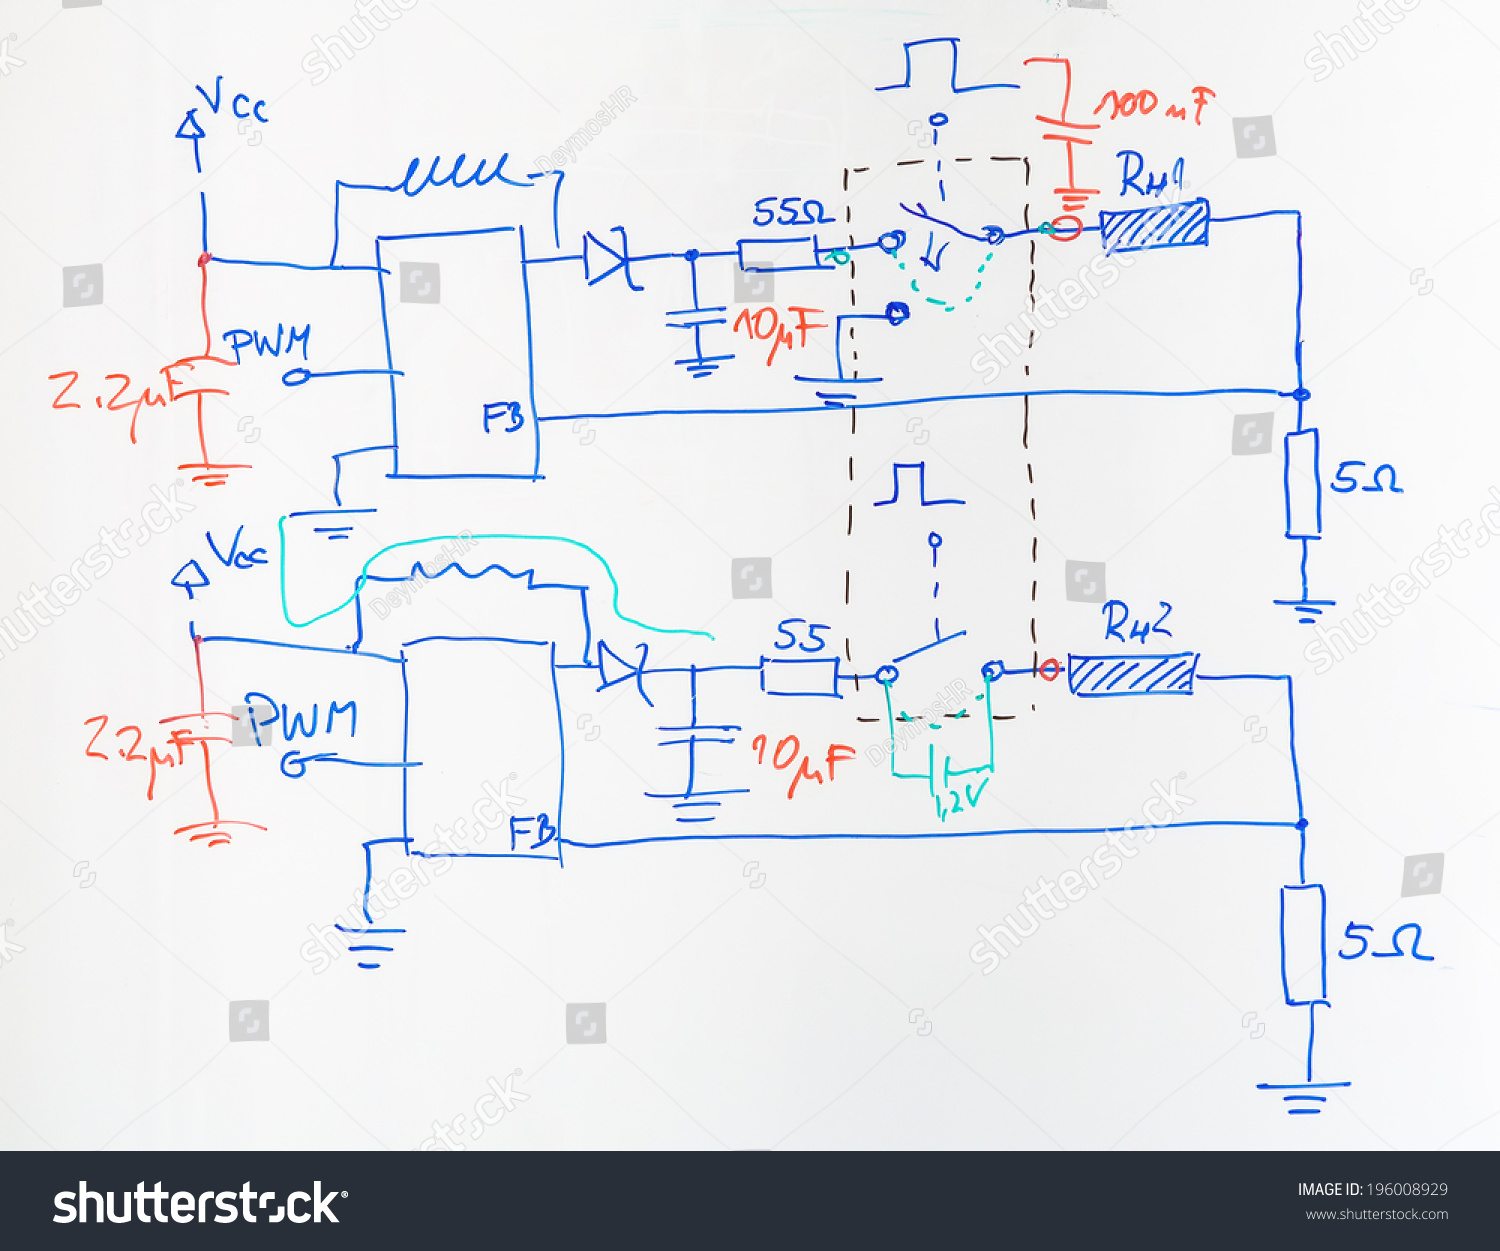 Electrical Scheme Hand Drawn Blue Red Stock Photo (Royalty Free ...